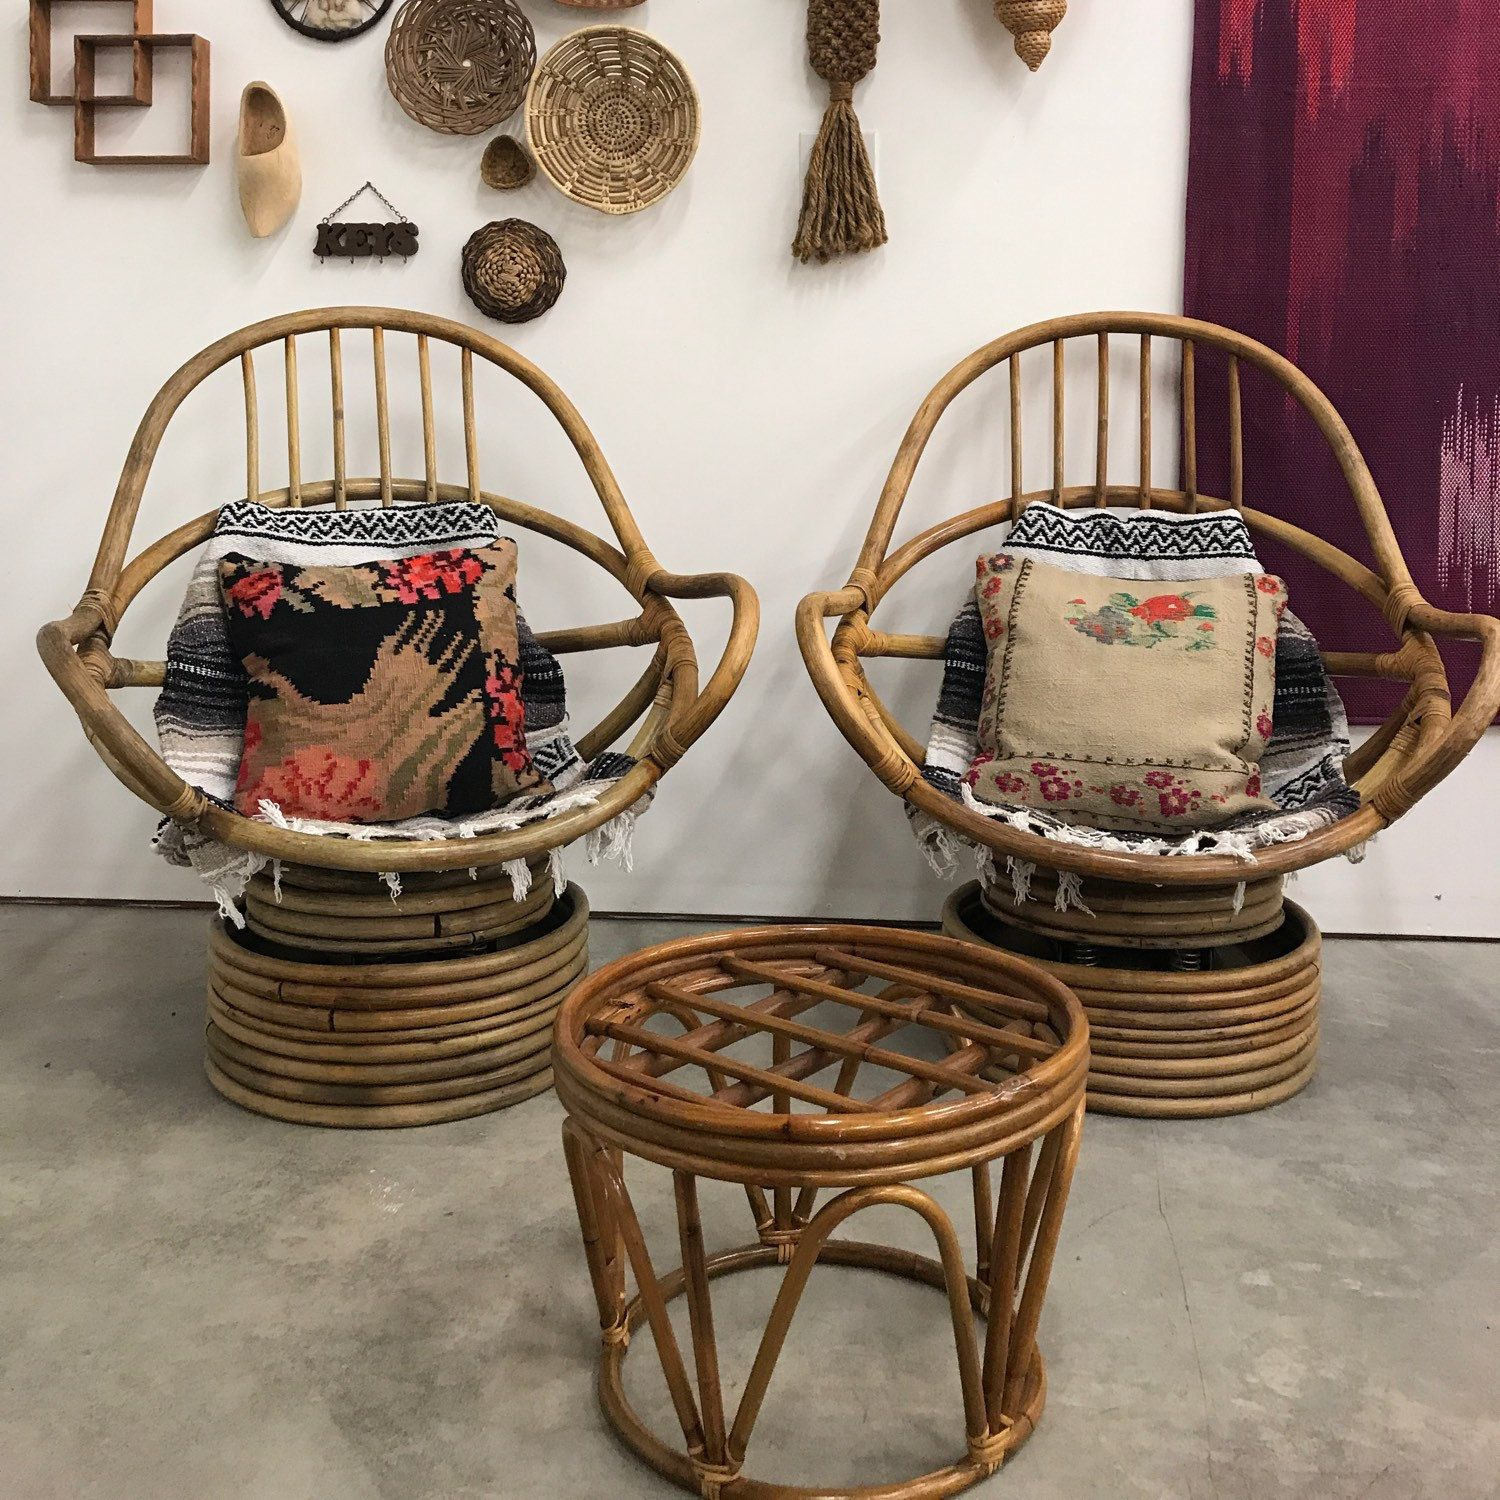 Rattan Swivel Rocking Chairs Are Now Listed On The Website.